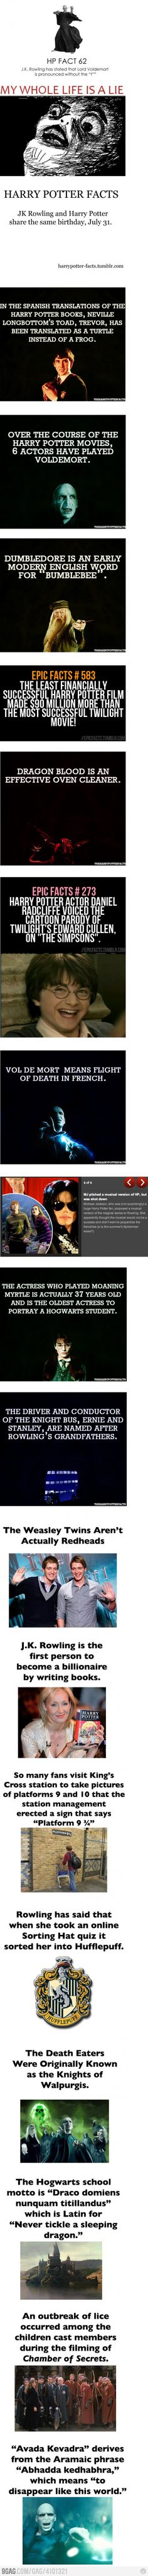 20 Facts You May Not Know About Harry Potter, I however knew almost all of them...